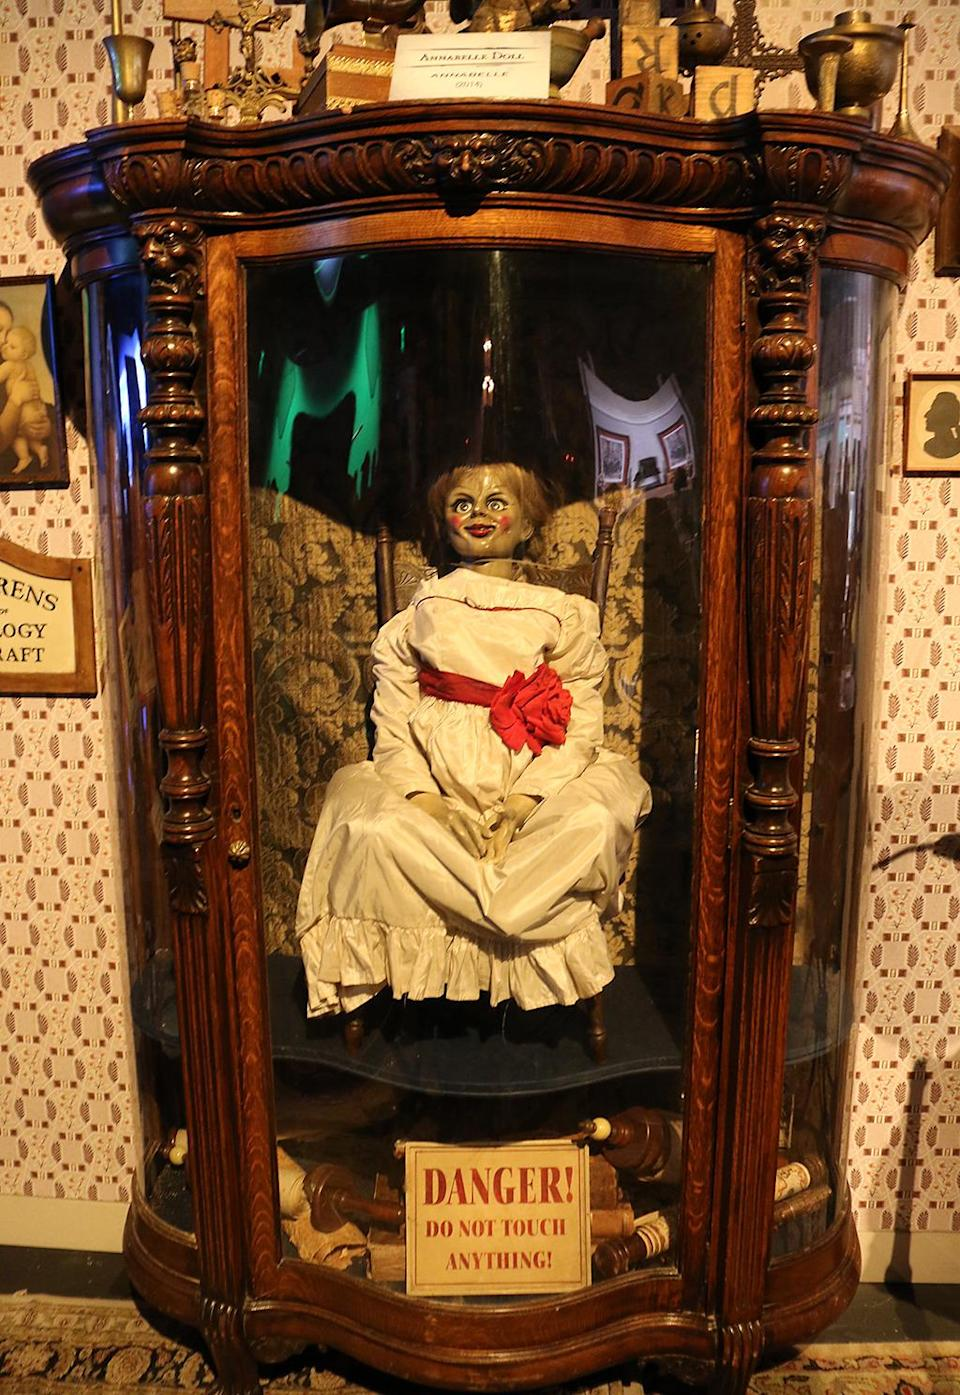 """<p>One of the <a rel=""""nofollow"""" href=""""https://www.yahoo.com/movies/how-the-real-doll-behind-annabelle-became-even-99081889057.html"""" data-ylk=""""slk:freaky dolls;outcm:mb_qualified_link;_E:mb_qualified_link;ct:story;"""" class=""""link rapid-noclick-resp yahoo-link"""">freaky dolls</a> used to scary effect in the horror franchise, locked in the cabinet from the storage room of the real-life investigators Ed and Lorraine Warren. (Photo: Angela Kim/Yahoo) </p>"""